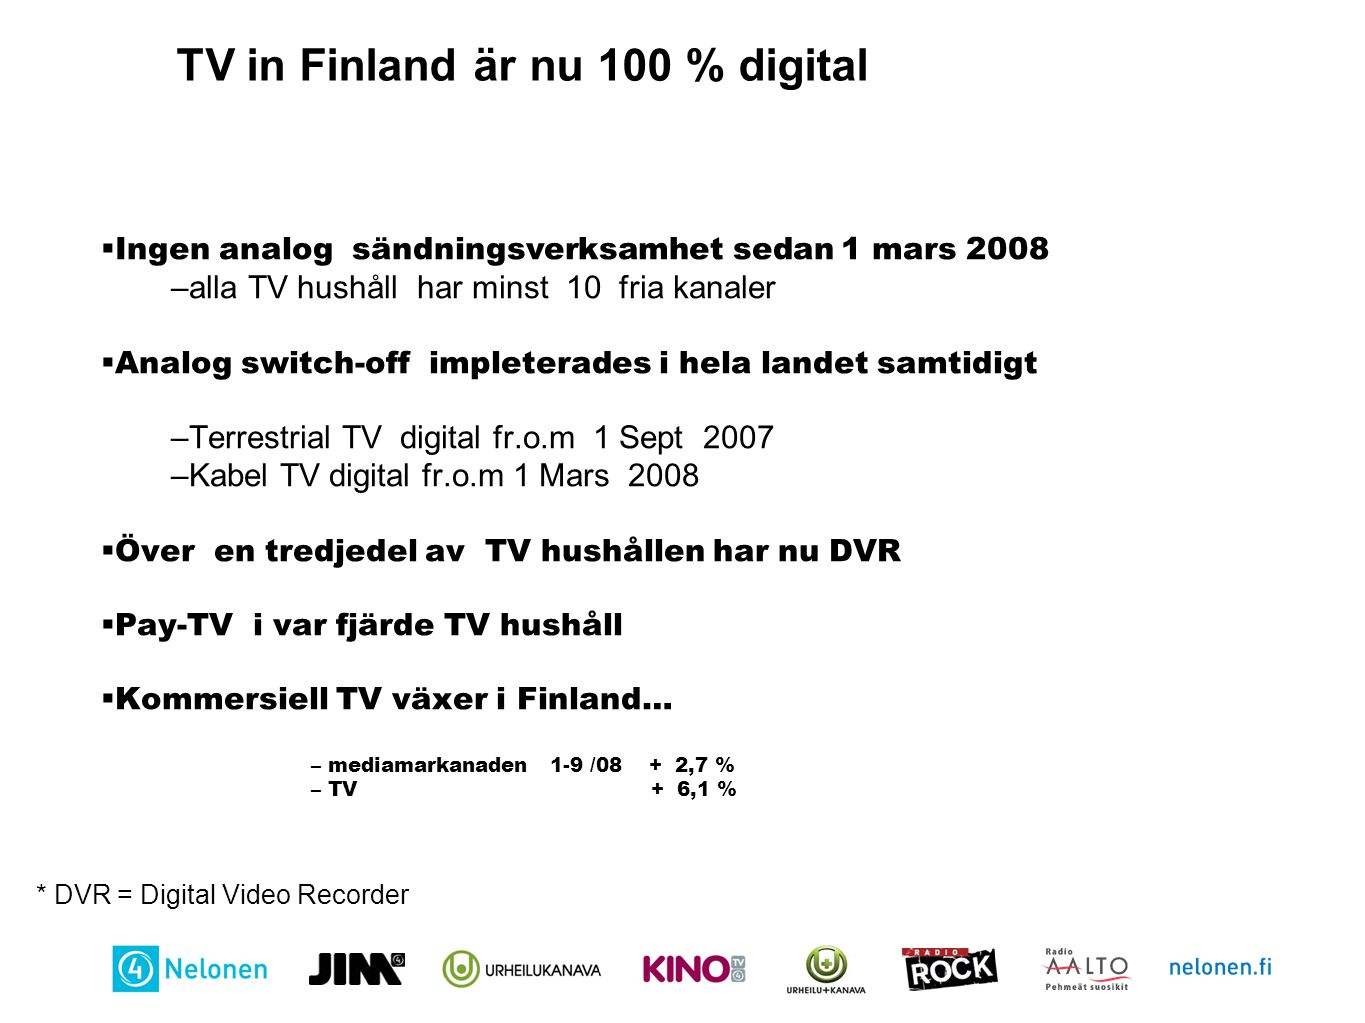 TV in Finland är nu 100 % digital